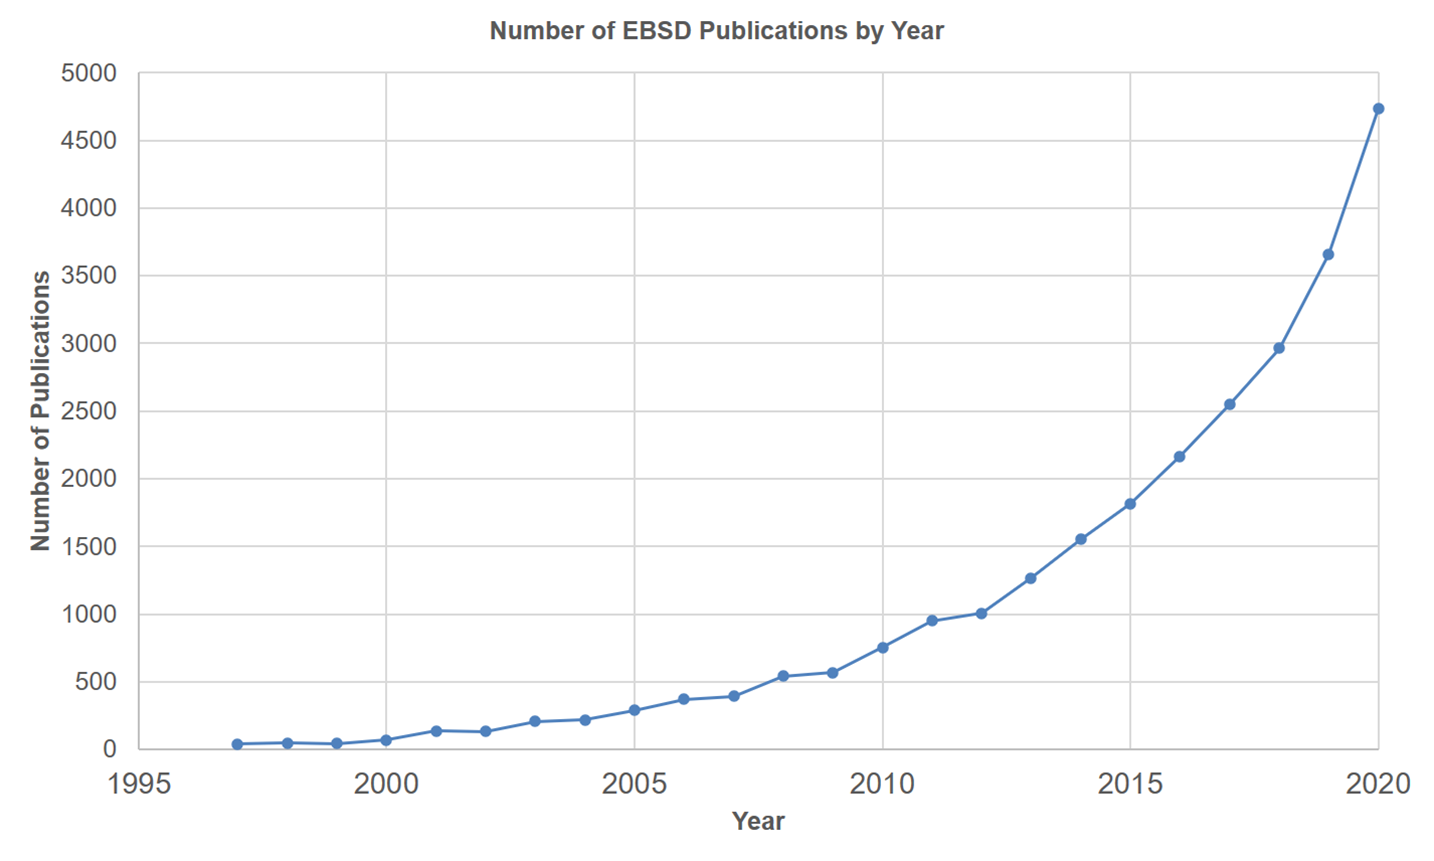 Figure 1. EBSD publications by year.